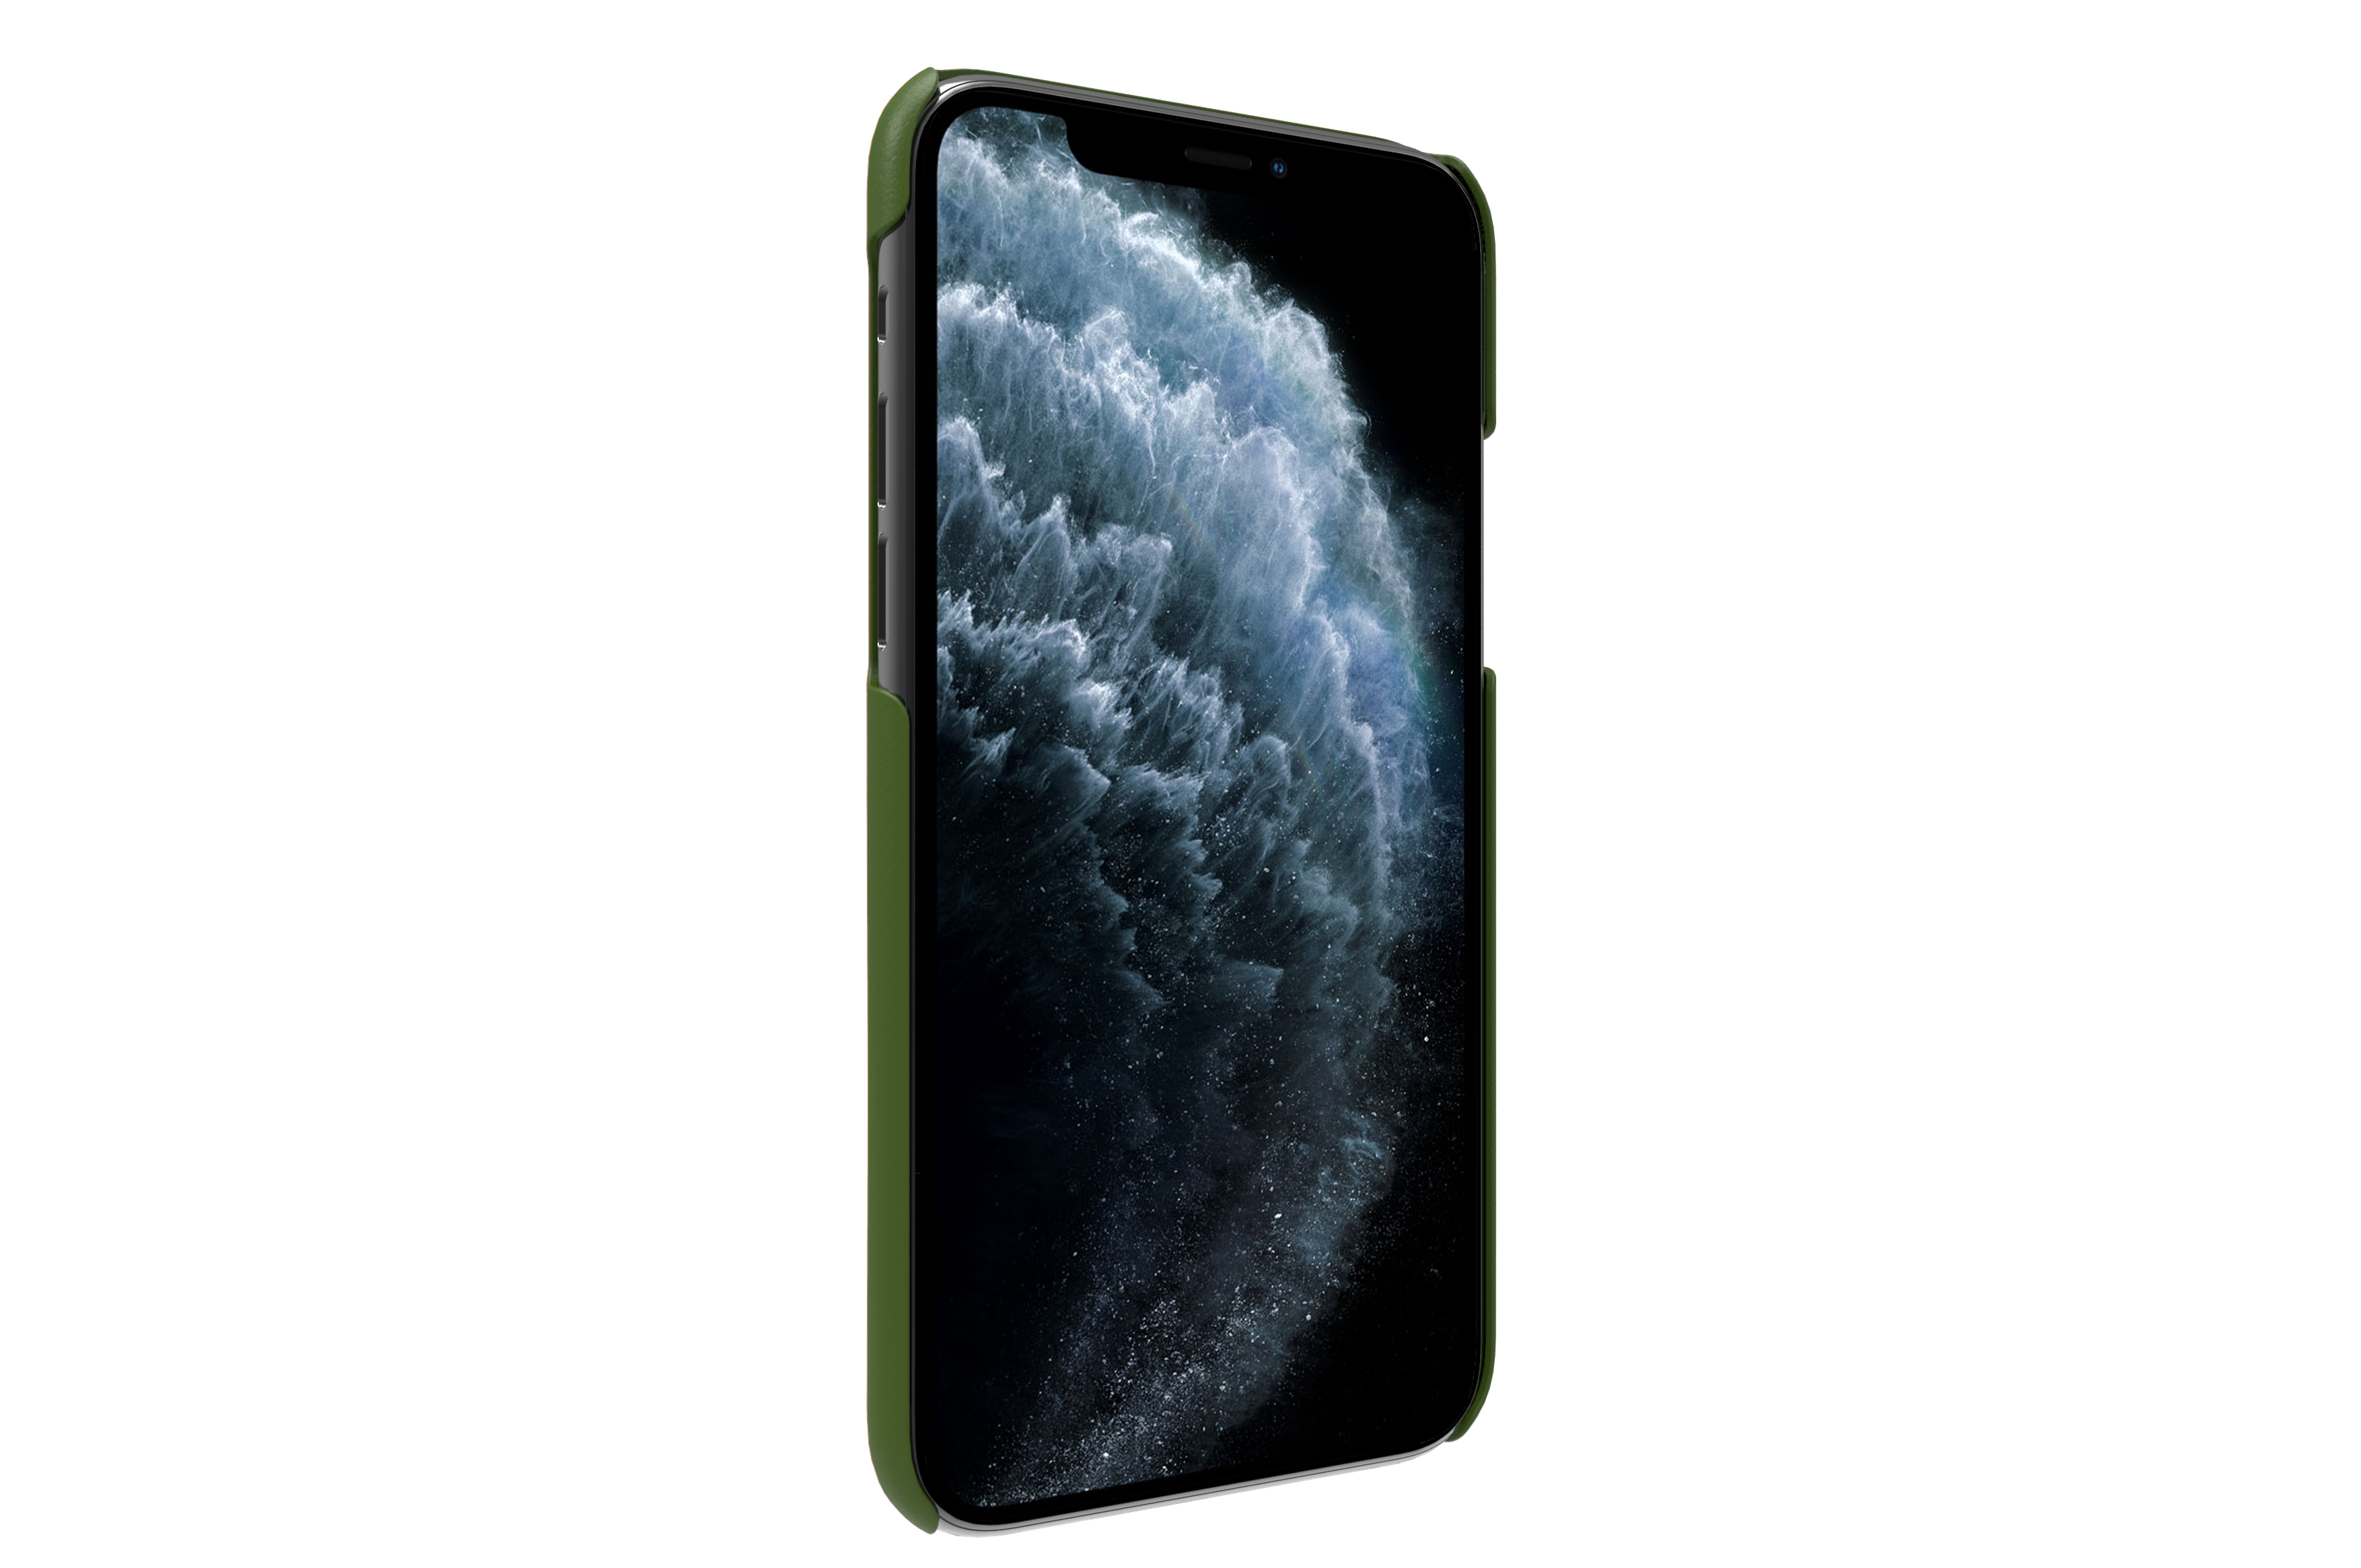 iphone11 pro green-4.